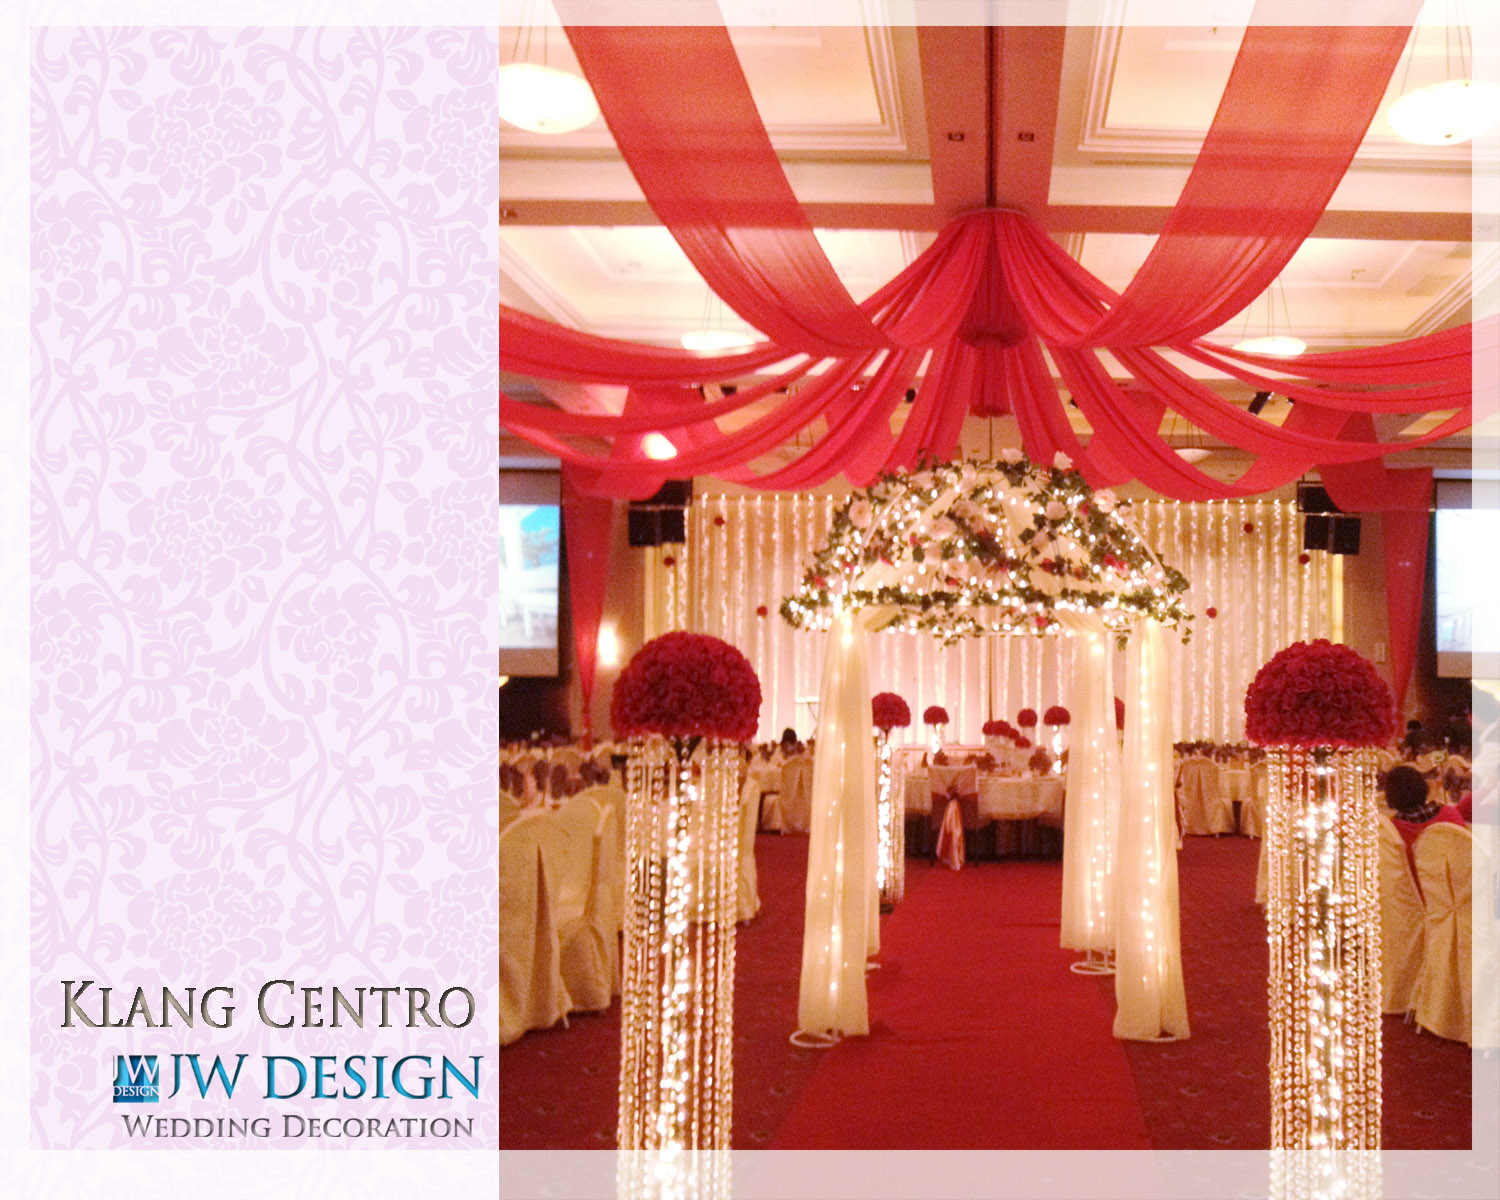 Jw design wedding decoration edwin amelias wedding klang posted by jw design wedding decoration at 801 pm junglespirit Gallery